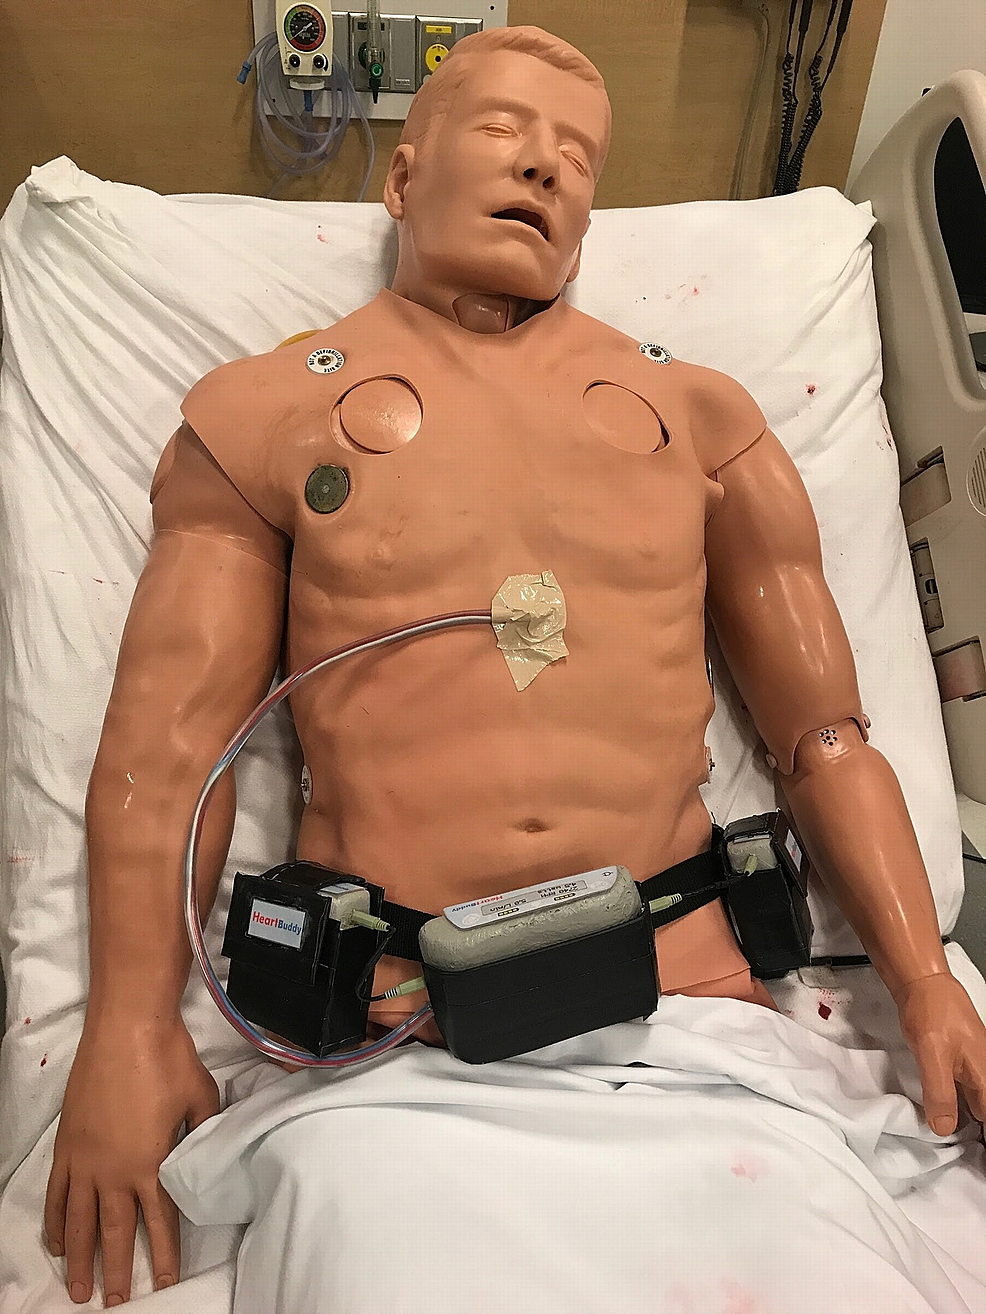 Simulaids-Stat-Manikin-with-Deluxe-Airway-Management-Head-Simulator-wearing-simulated-left-ventricular-assist-device-(LVAD)